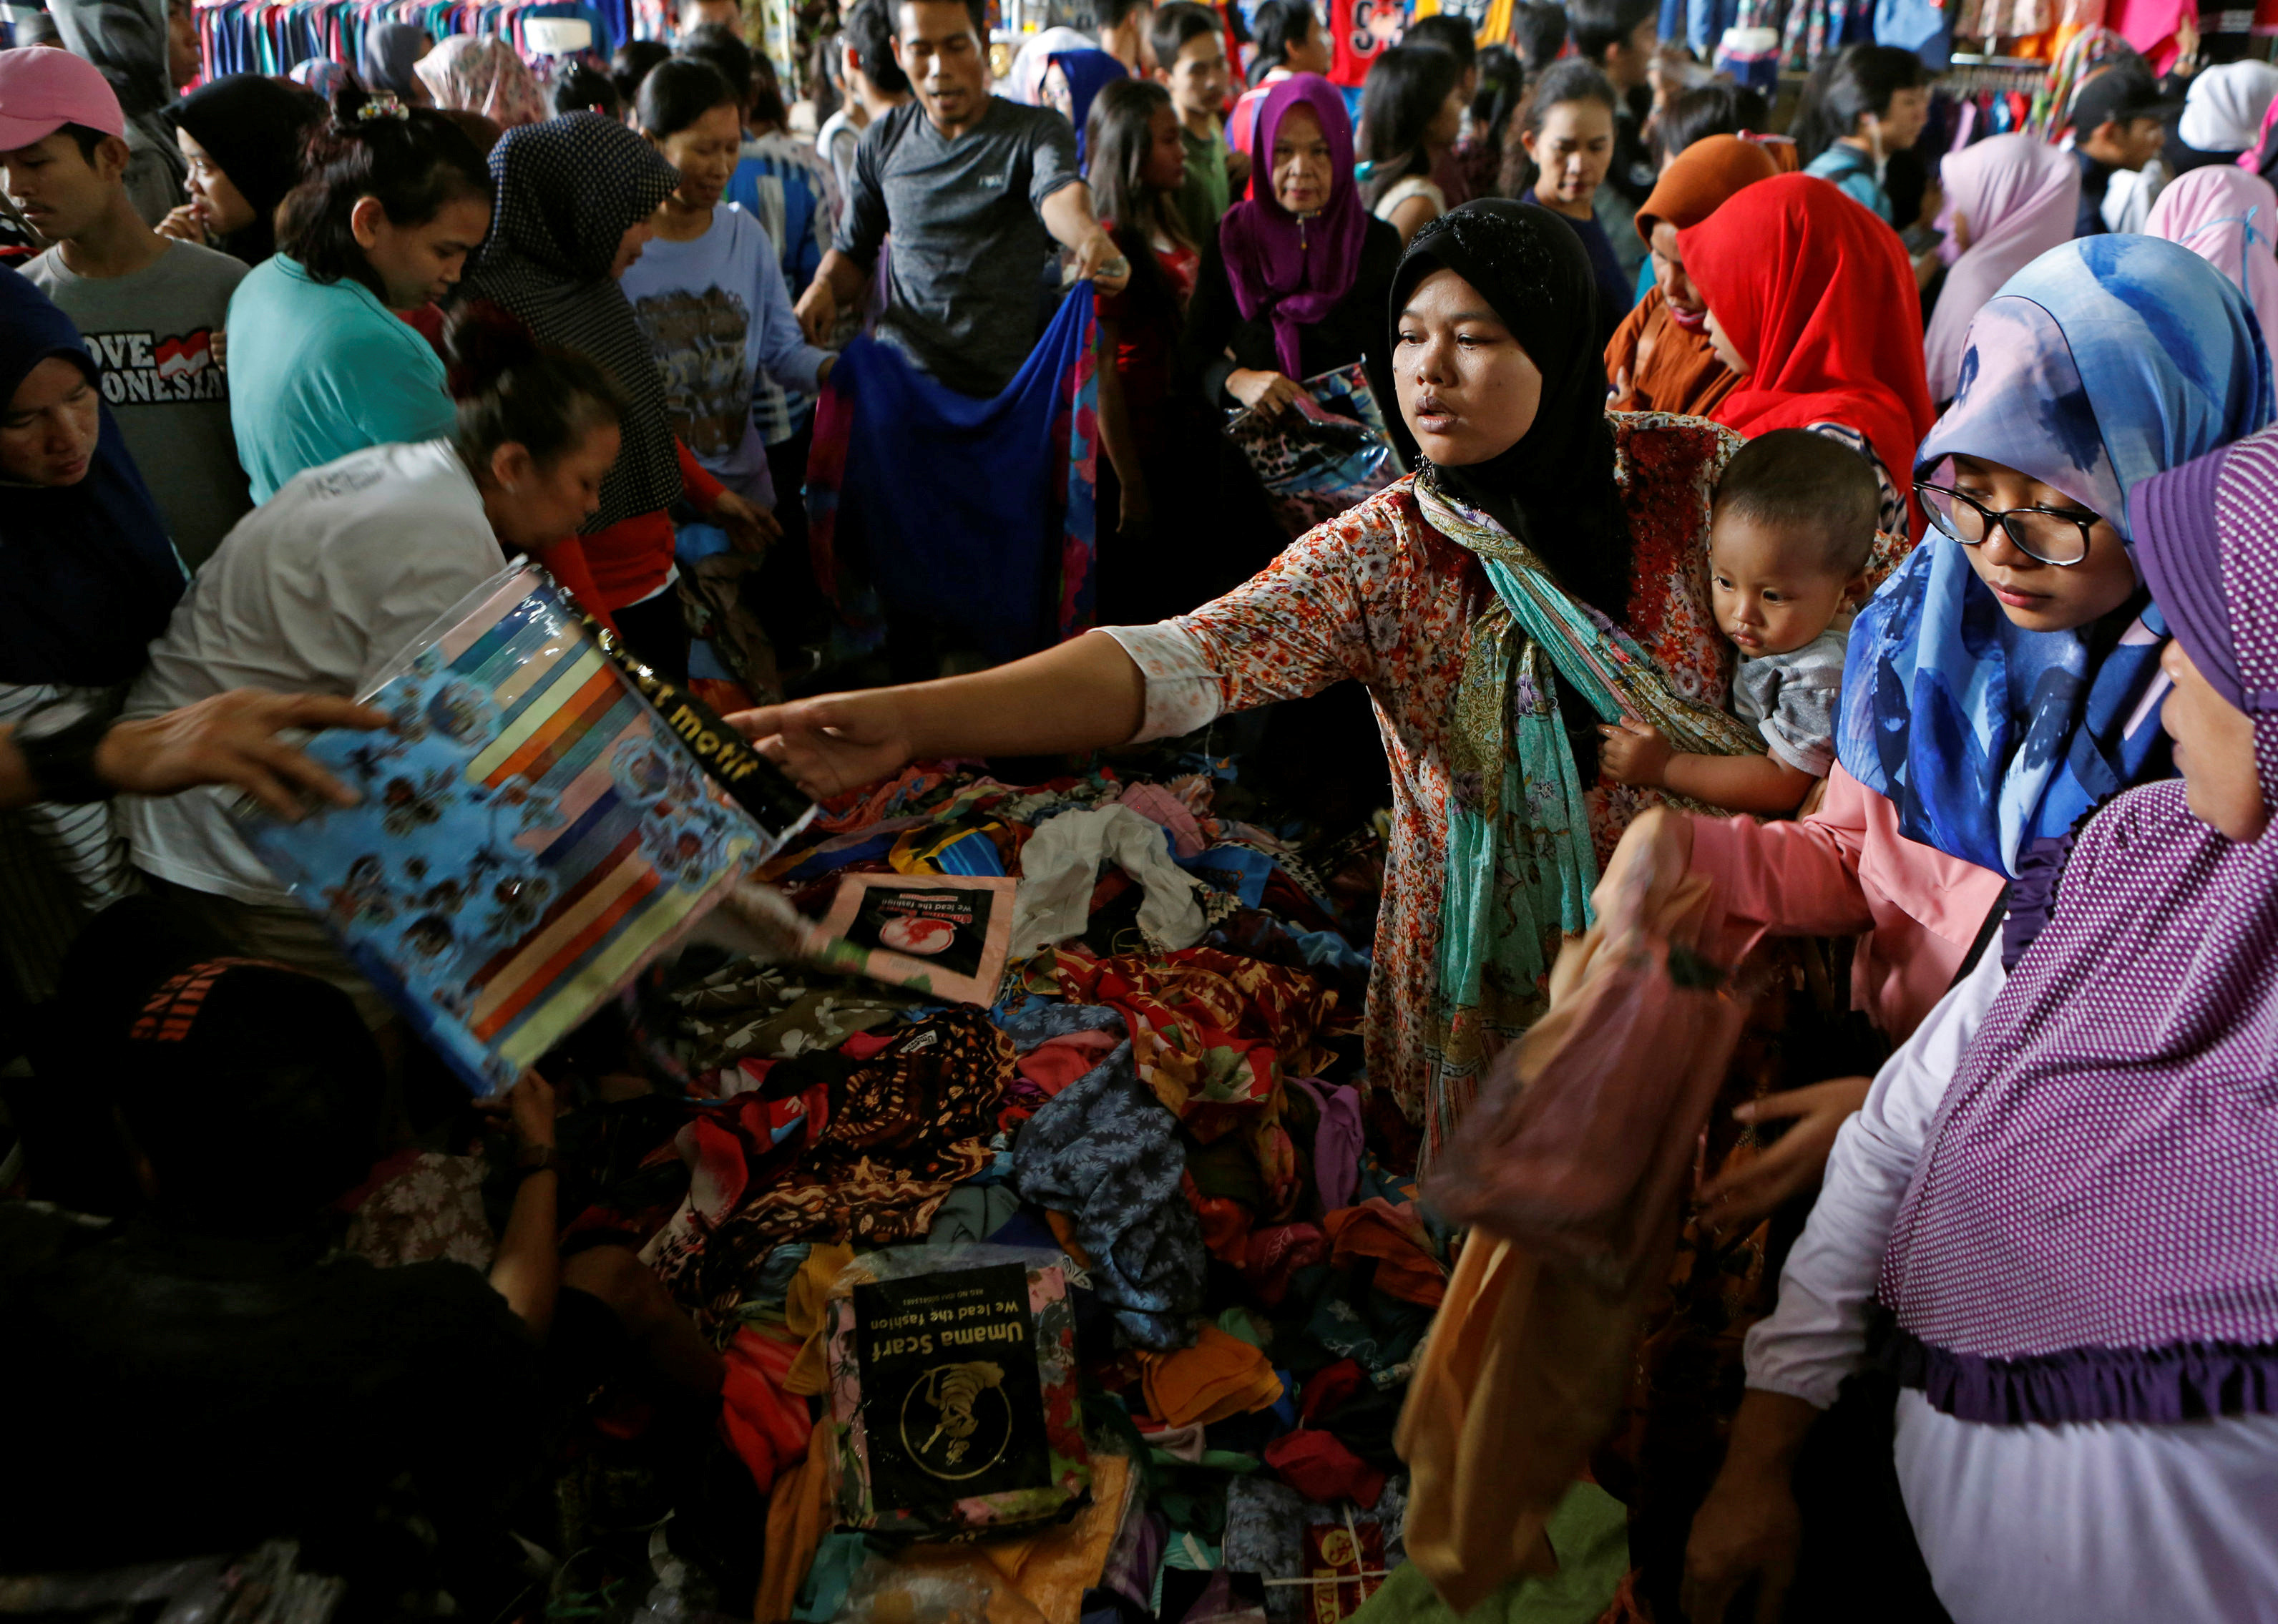 Shoppers at a Jakarta market ahead of the Muslim festival of Eid al-Fitr.